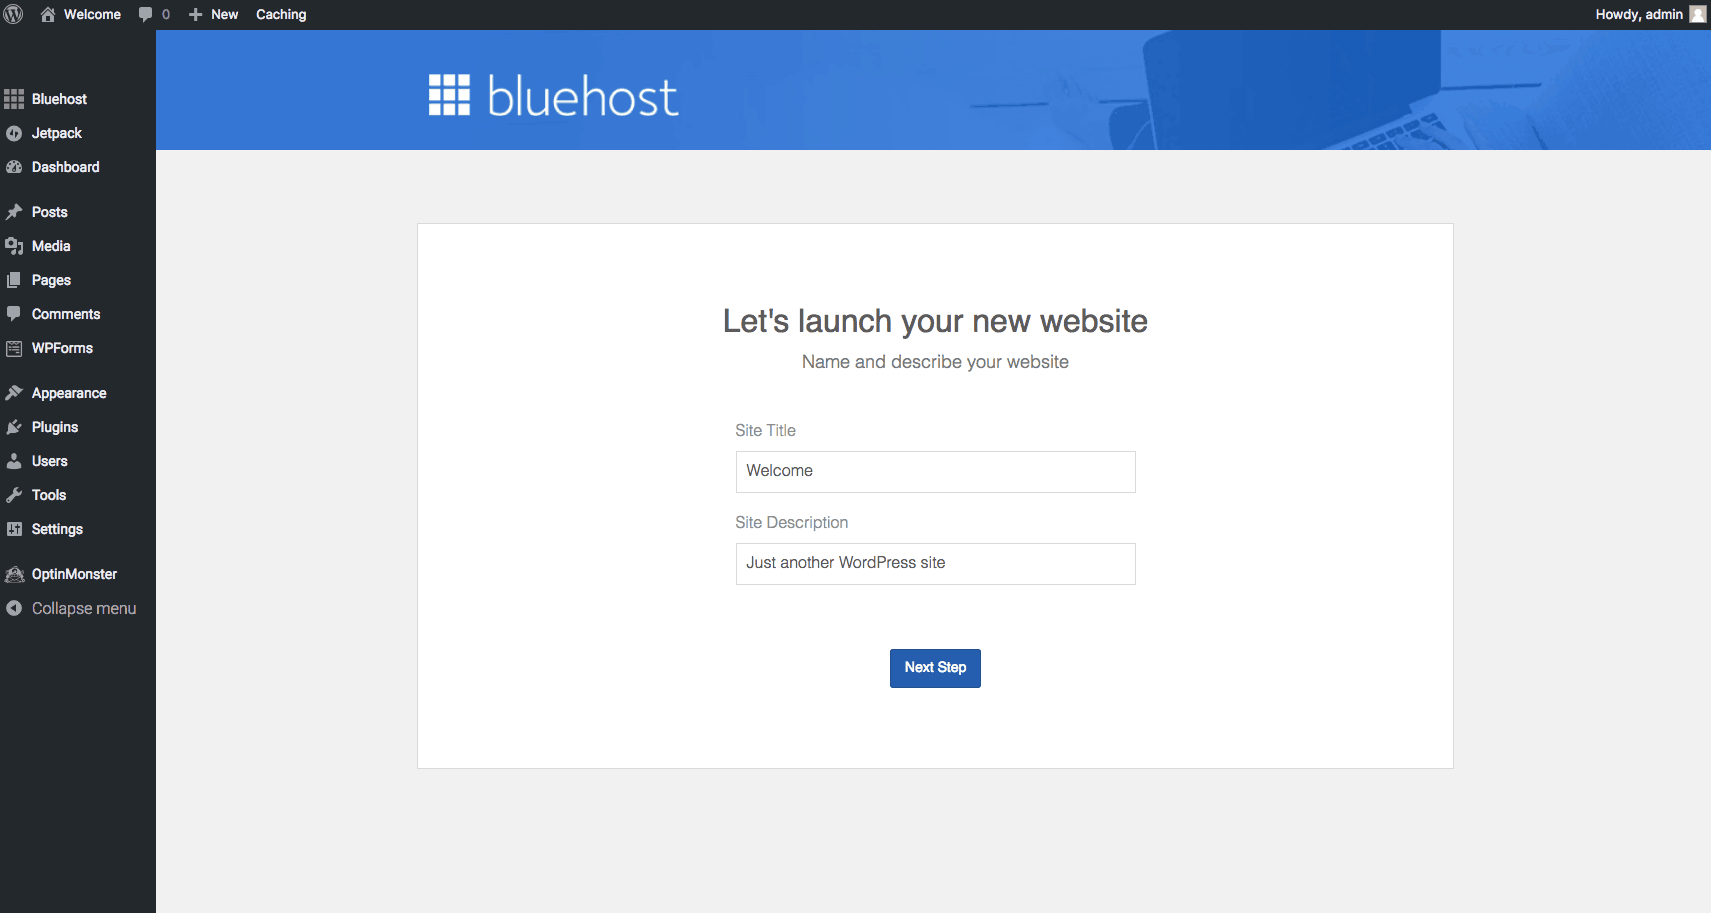 bluehost site title